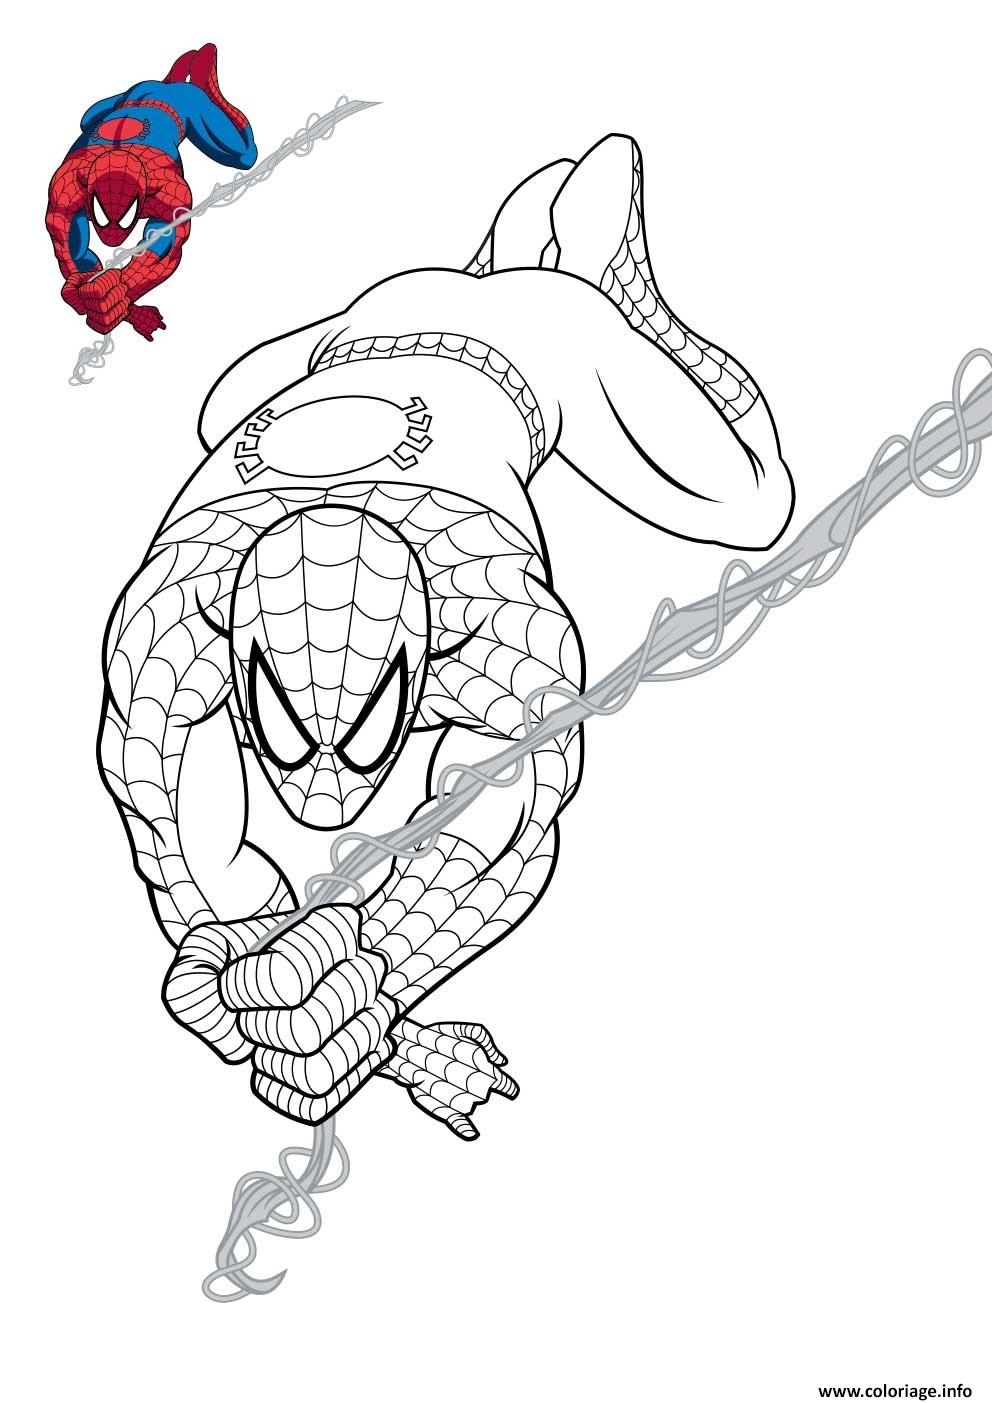 Coloriage spiderman en plein action dessin - Coloriage spiderman 1 ...